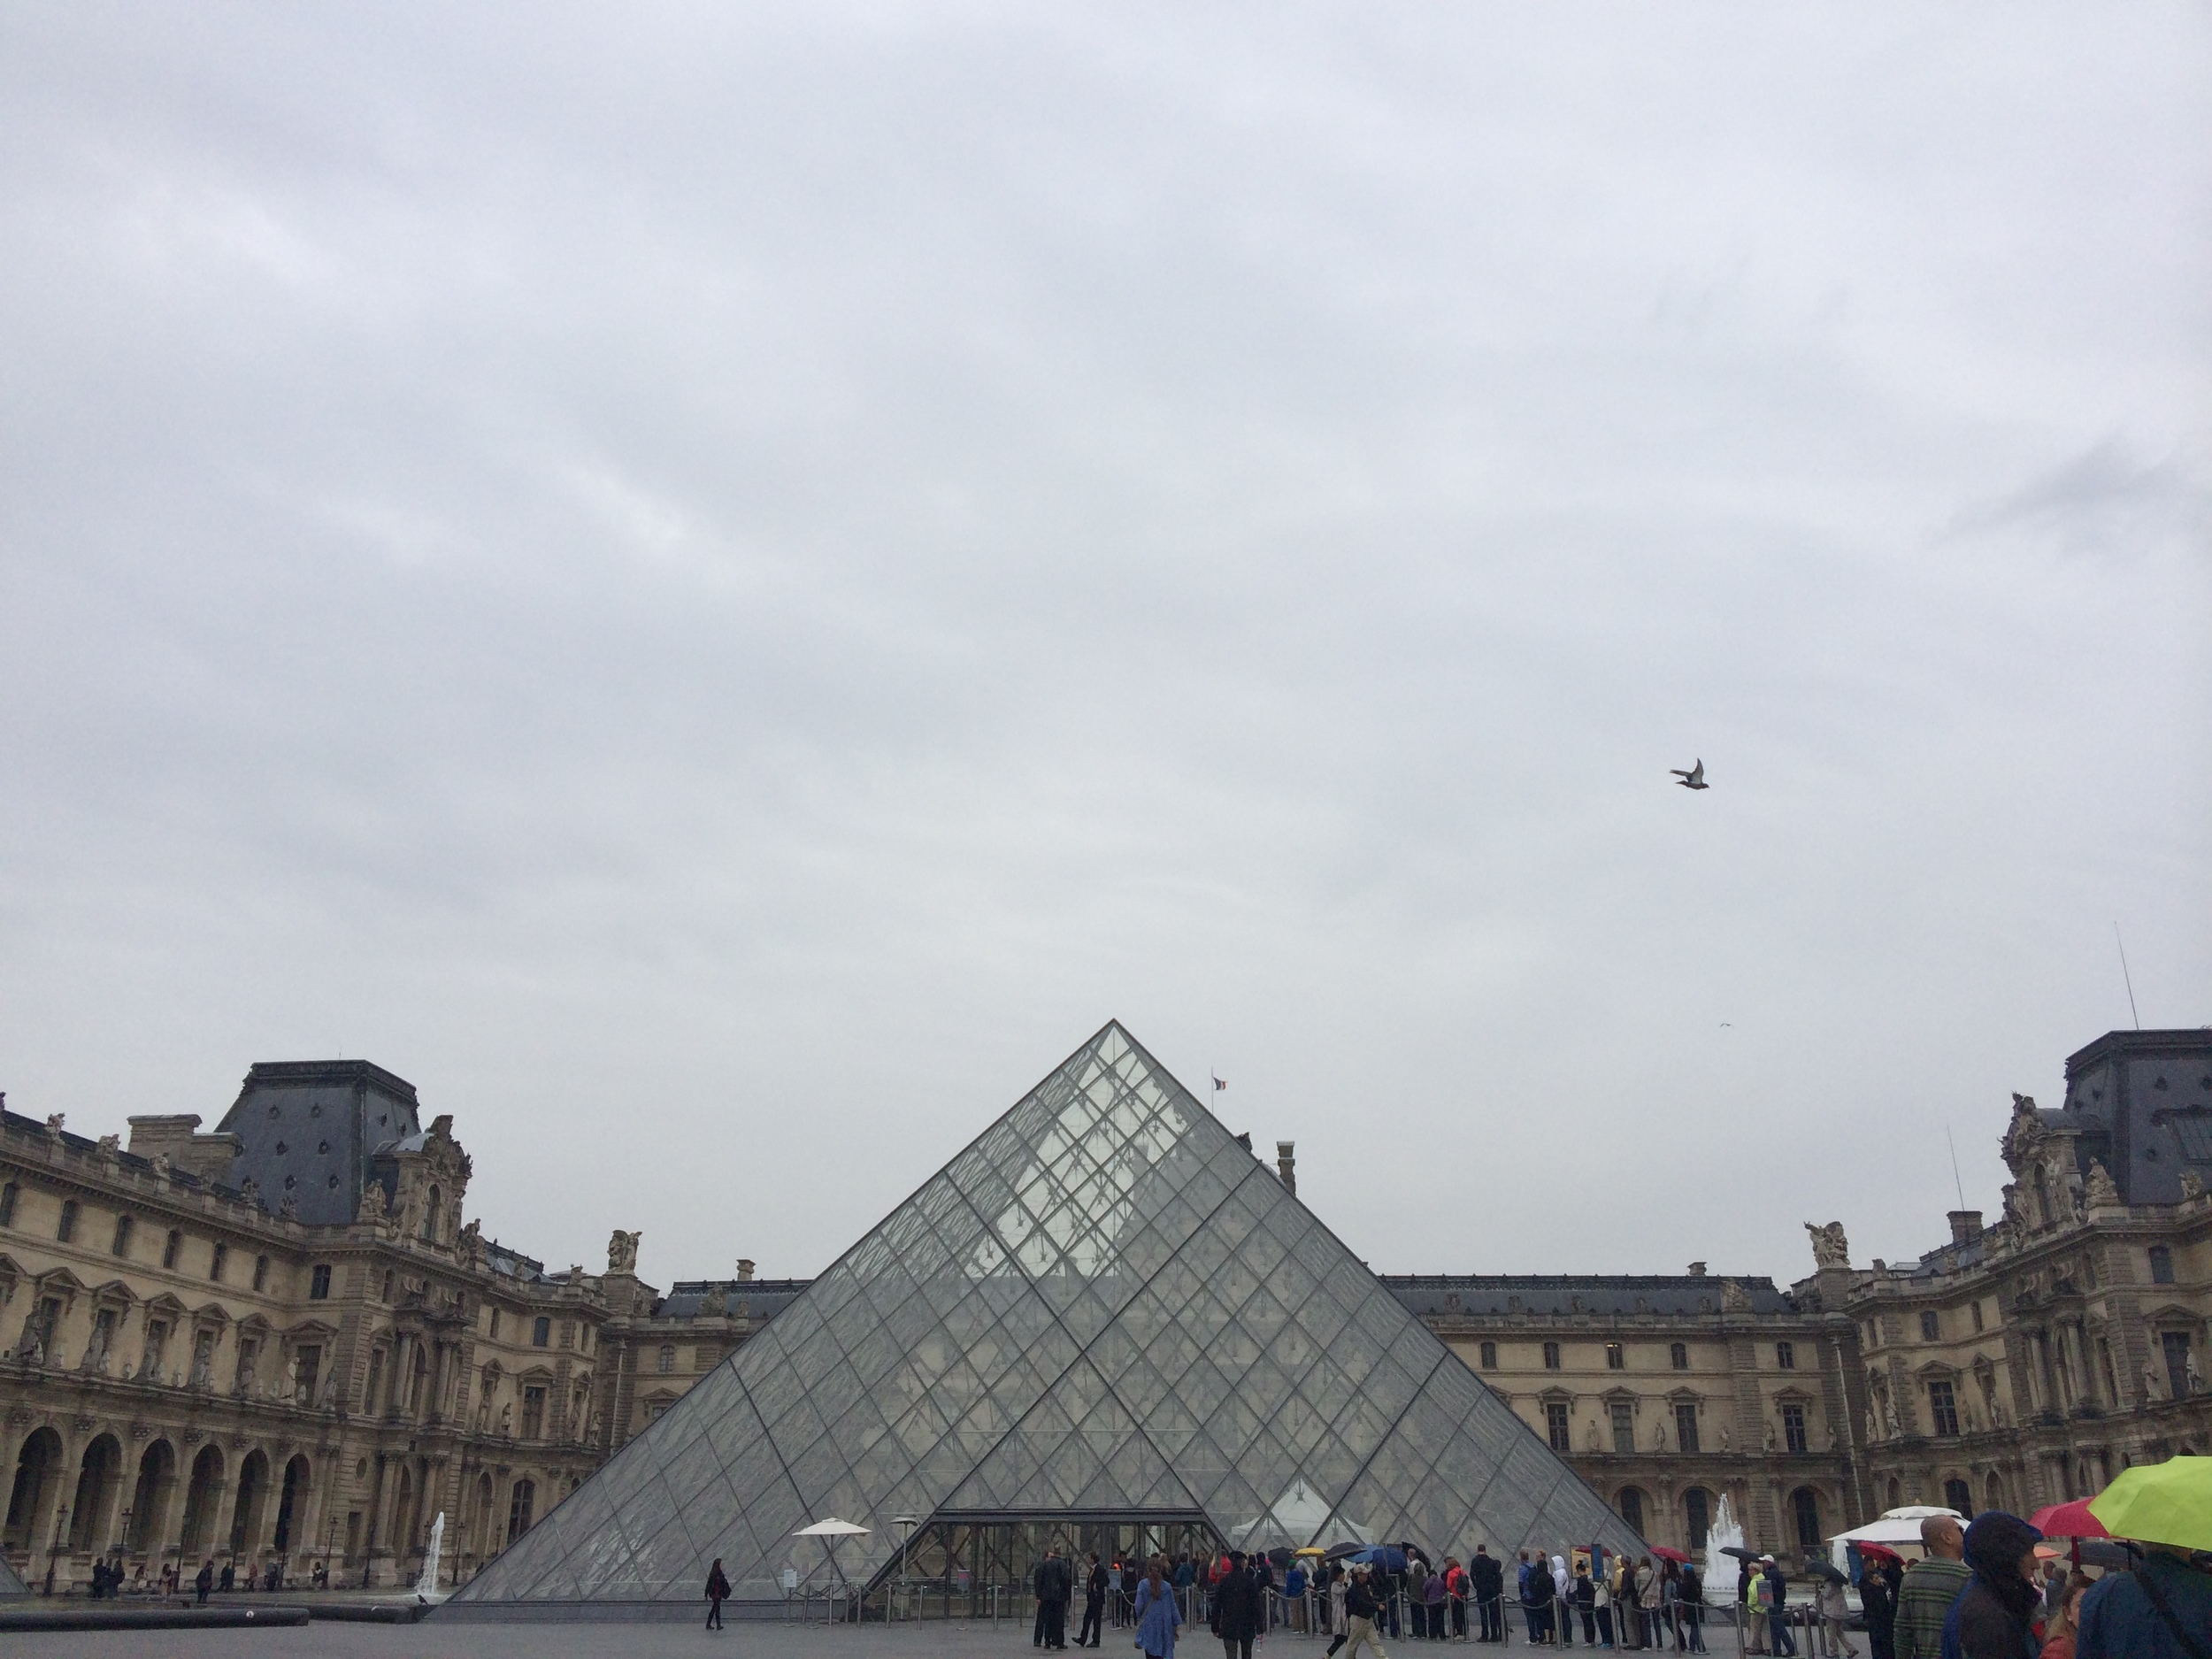 The Louvre with the Pyramid--a feature installed in 1989 and hated by the French because its modern style clashed so completely with the antiquated architecture of the Louvre. I think now they tolerate it more than appreciate it.